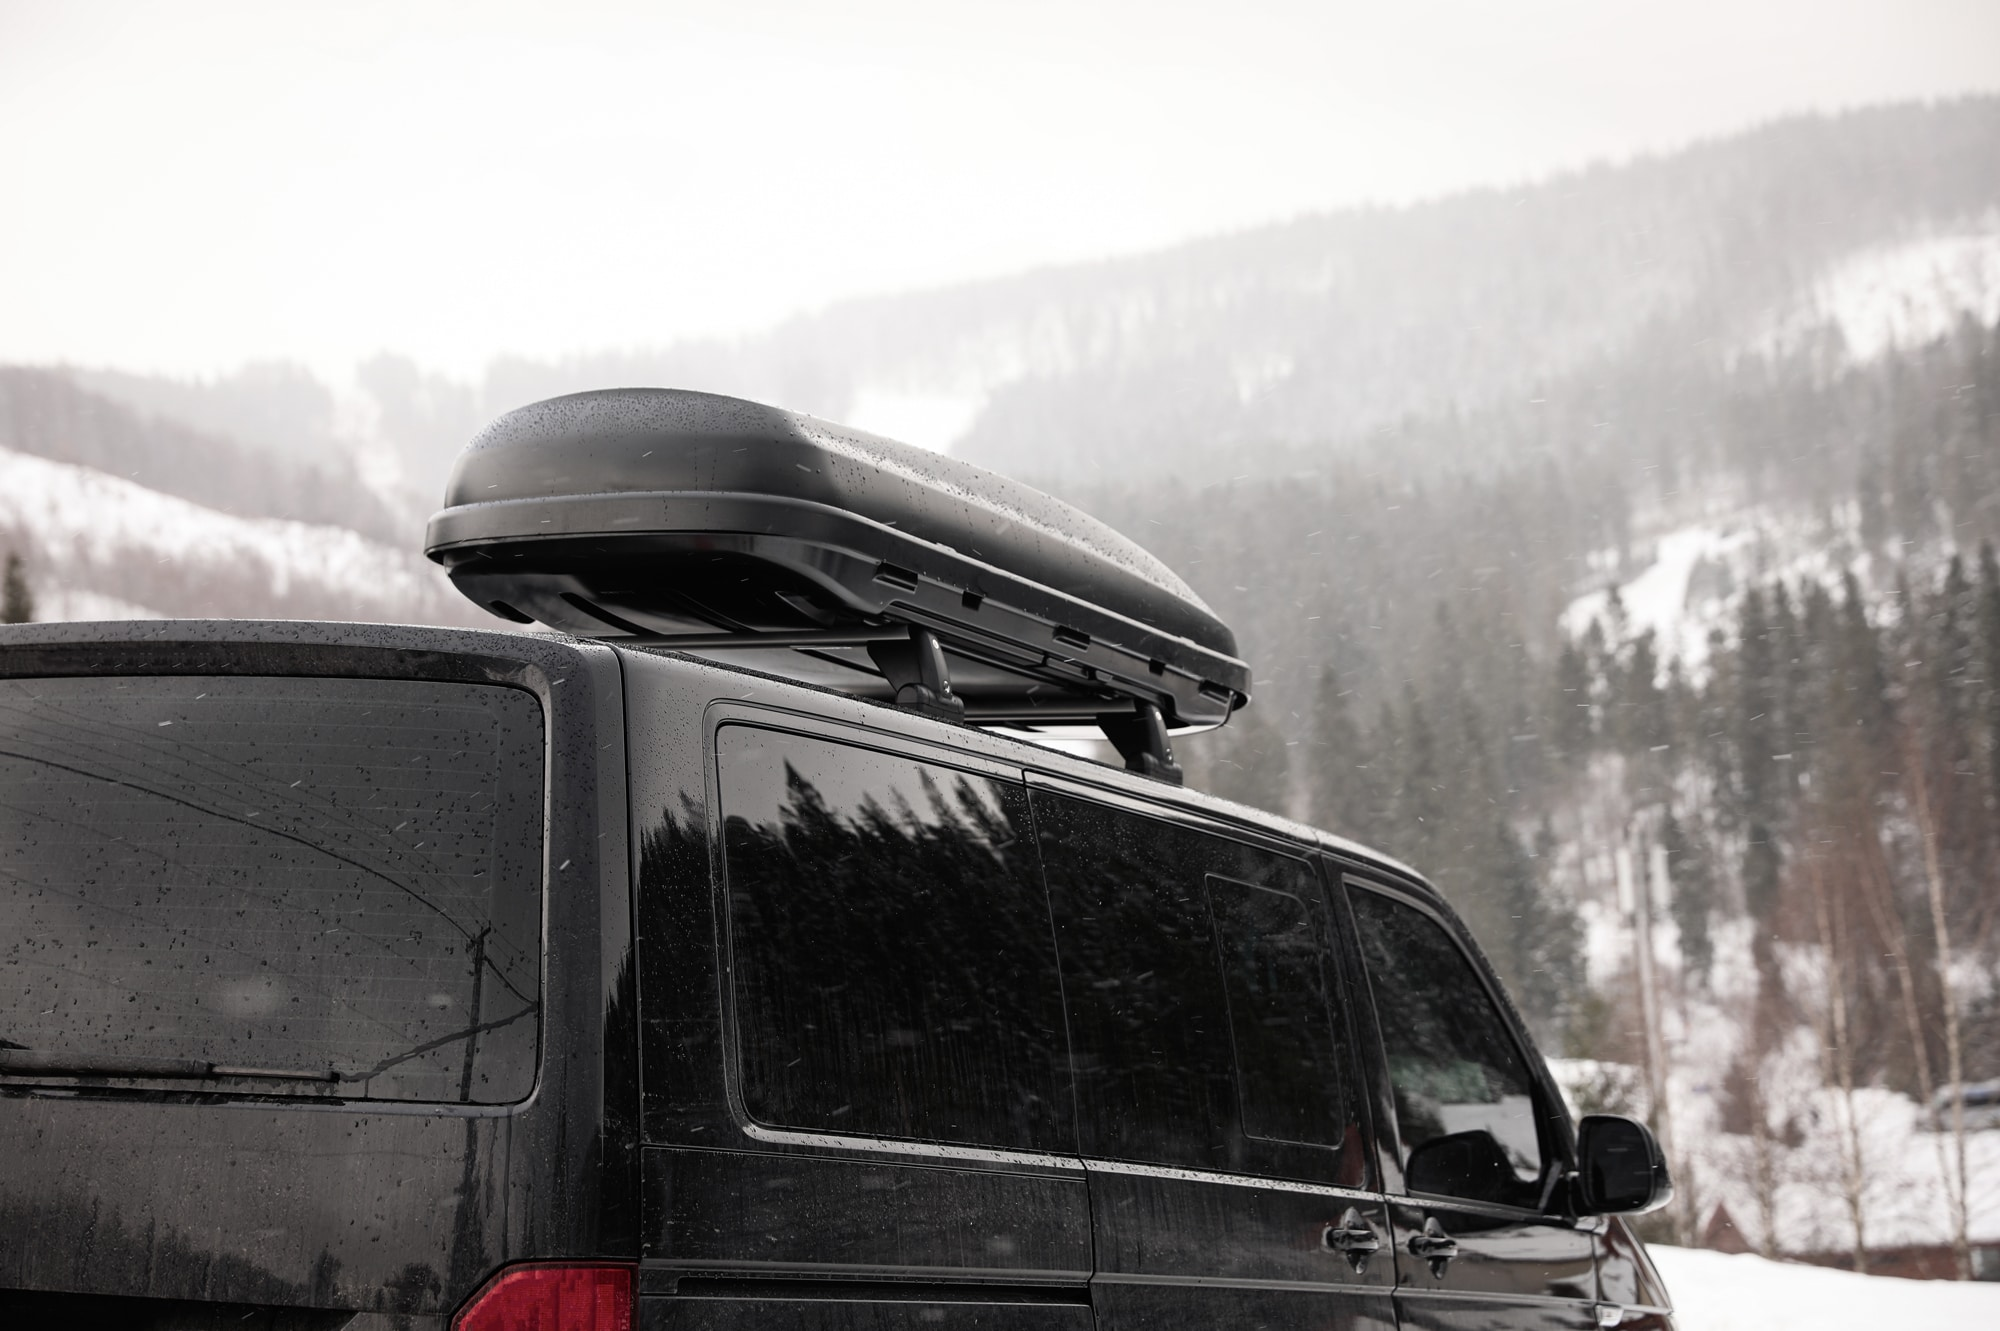 An image of a campervan in the snow camper conversions Scotland